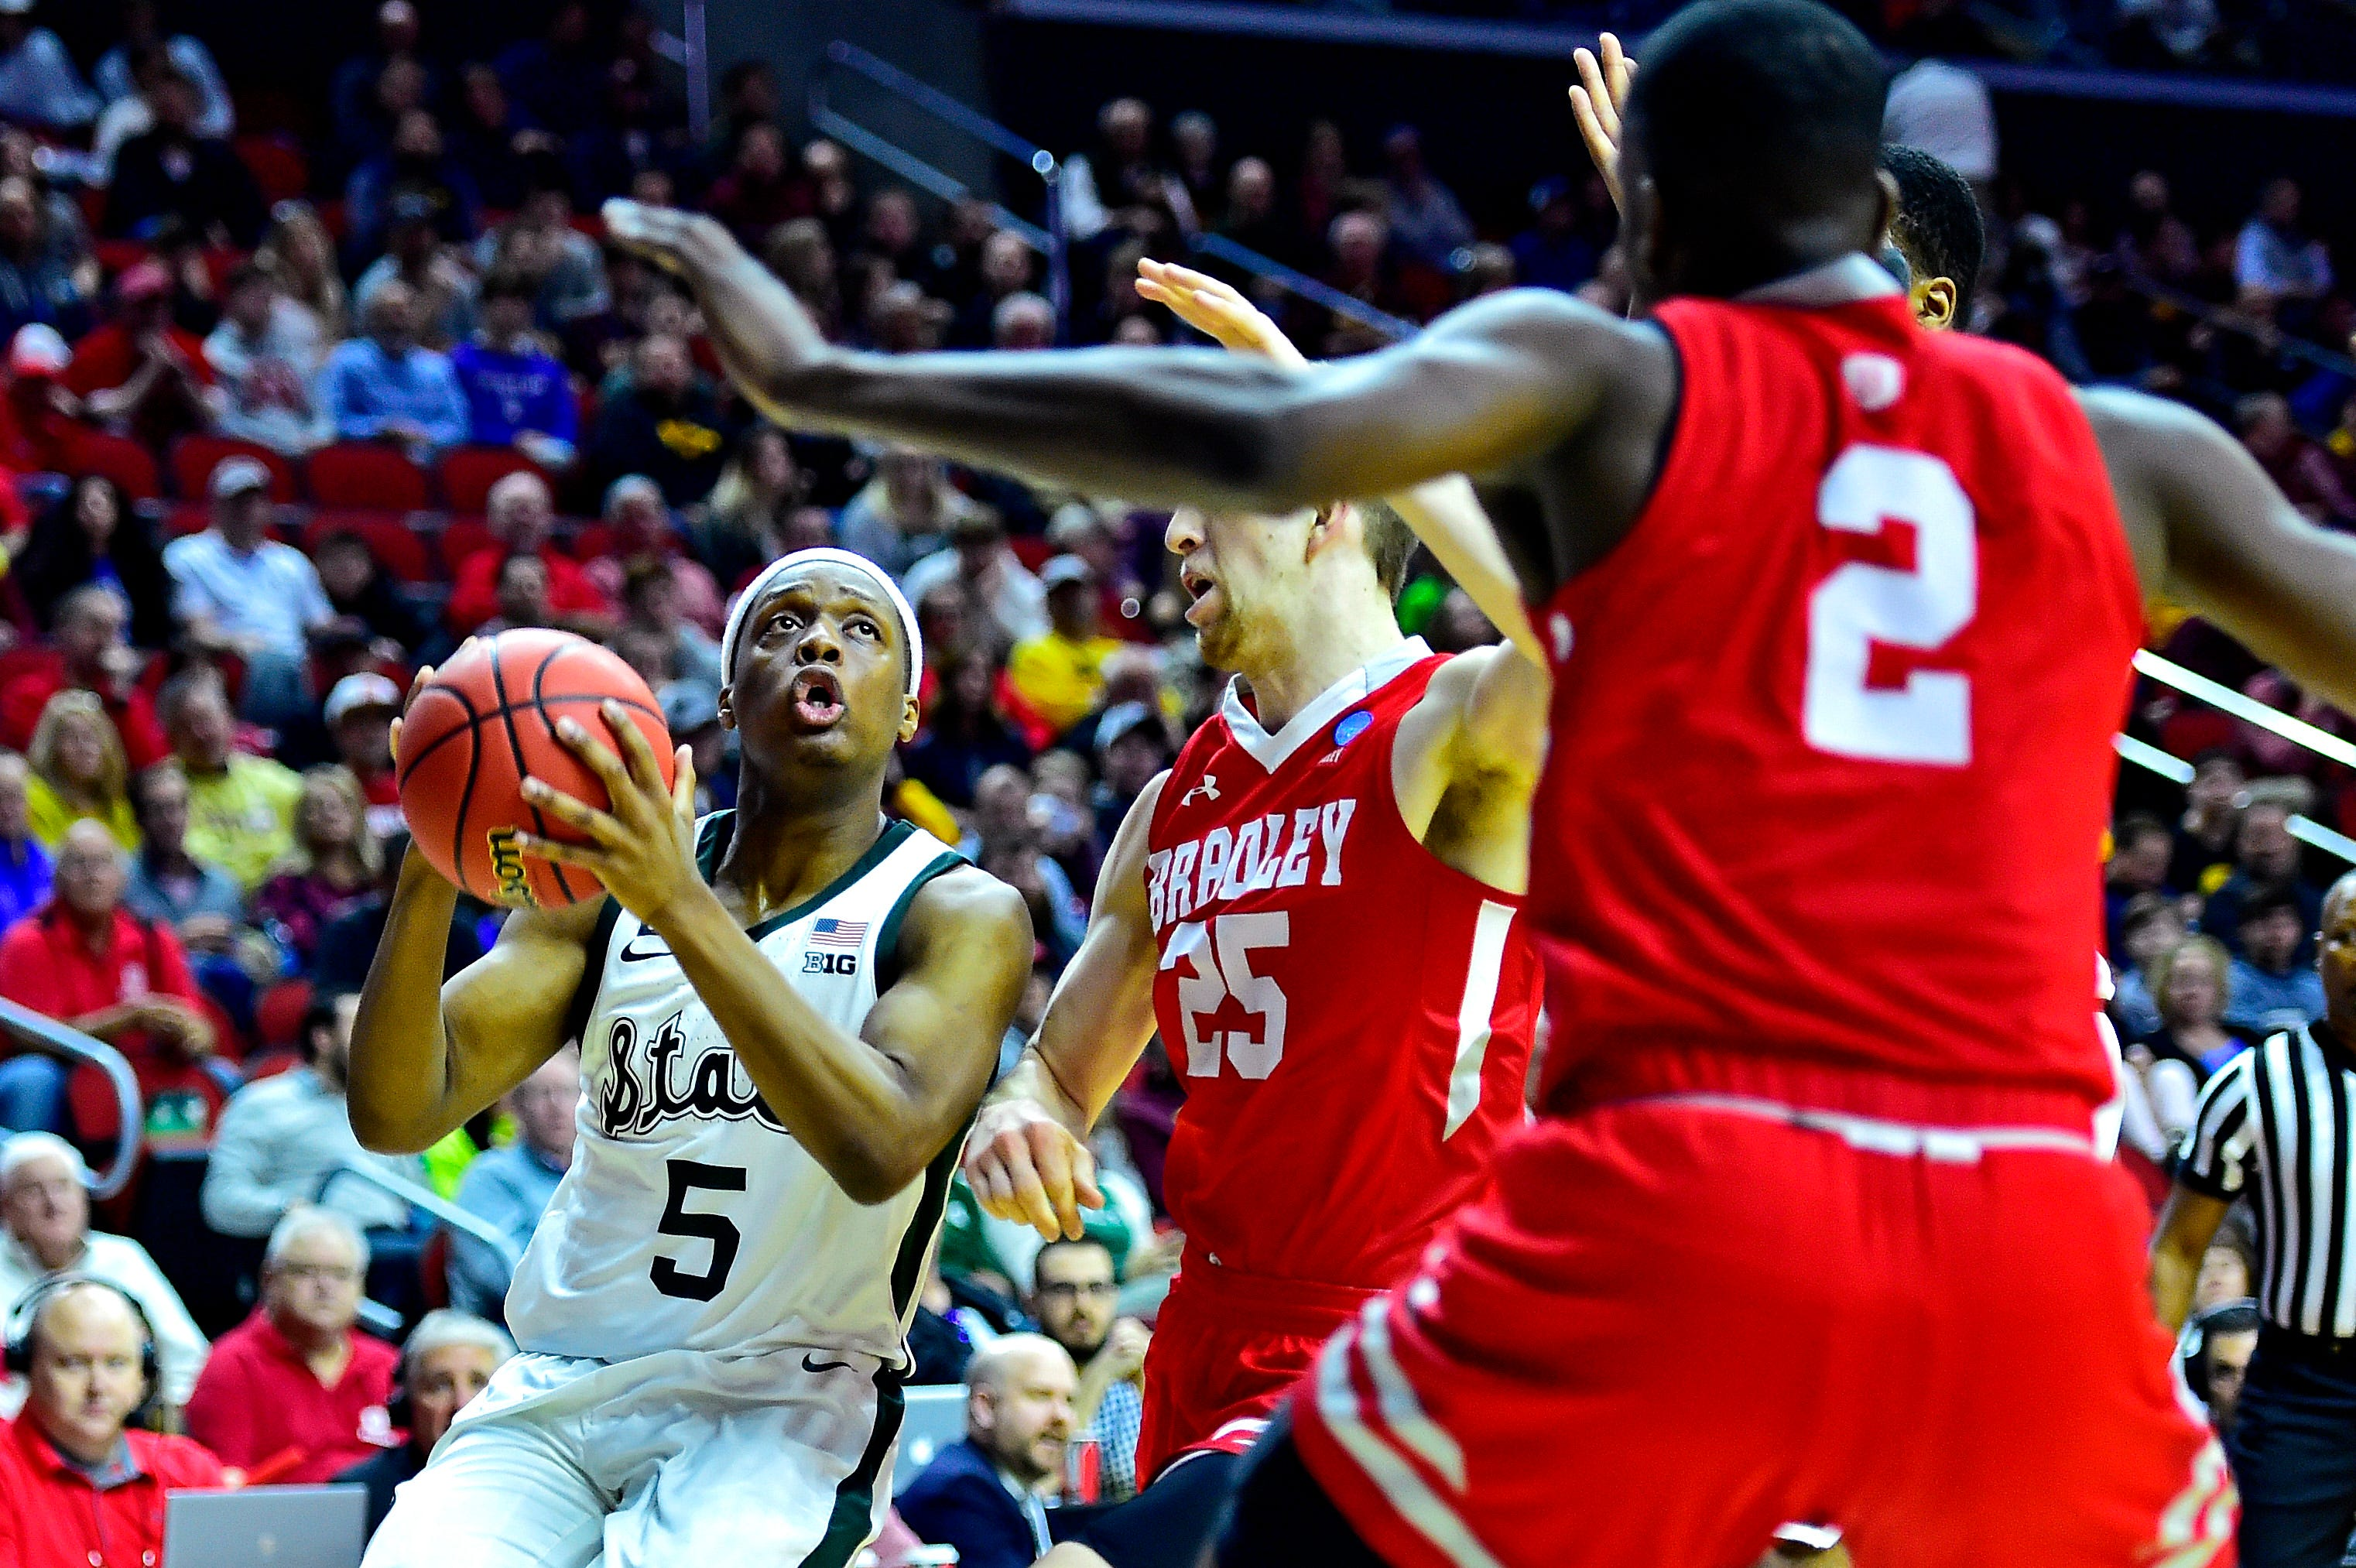 Bradley close with Michigan State and more NCAA tournament action in March Madness Day 1